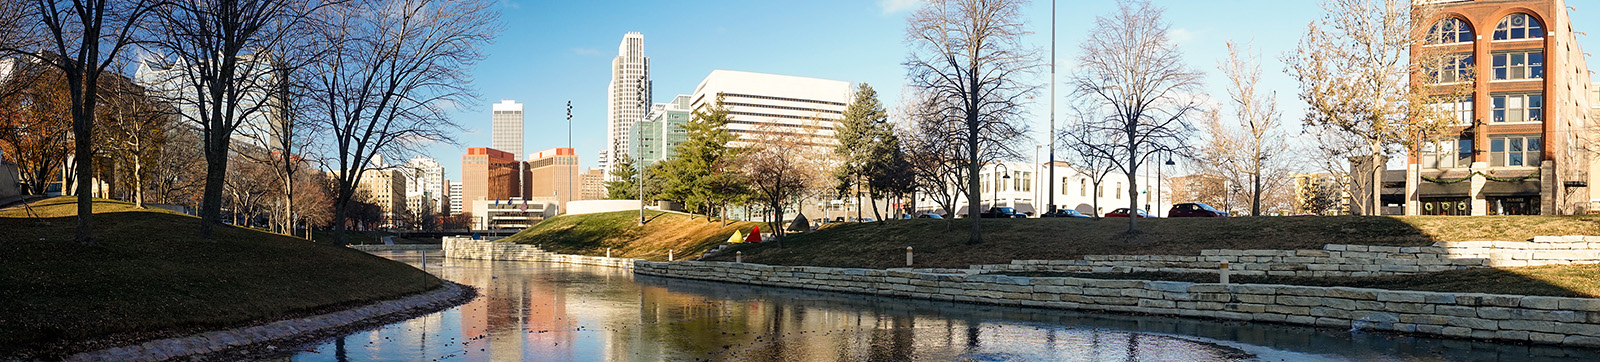 Riverfront buildings, art, bridges and architecture of Omaha, Nebraska